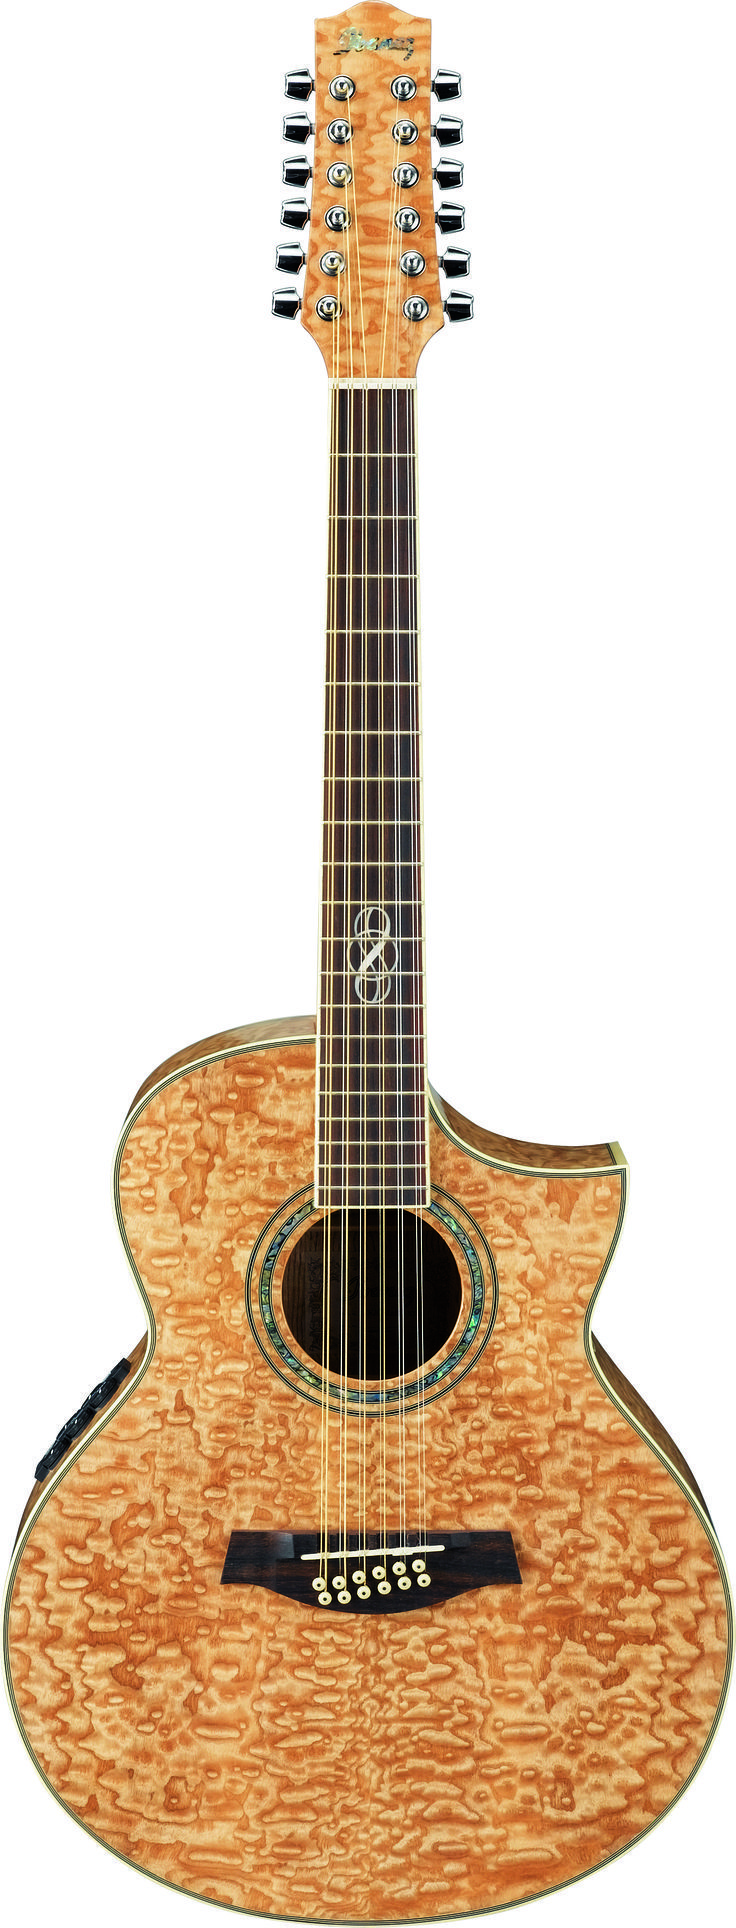 """Ibanez EW35SPENT Acoustic Guitar: SERIES BASICS•EW Body with Cutaway •Mahogany Neck •B-Band® UST™ Pickup •Ibanez SRTc Preamp with Chorus, Onboard Tuner •Balanced 1/4"""" and XLR Outputs •Ibanez Ivorex II™ Nut and Saddle •Ibanez Advantage™ Bridge Pins •D'Addario® EXP™ Strings"""